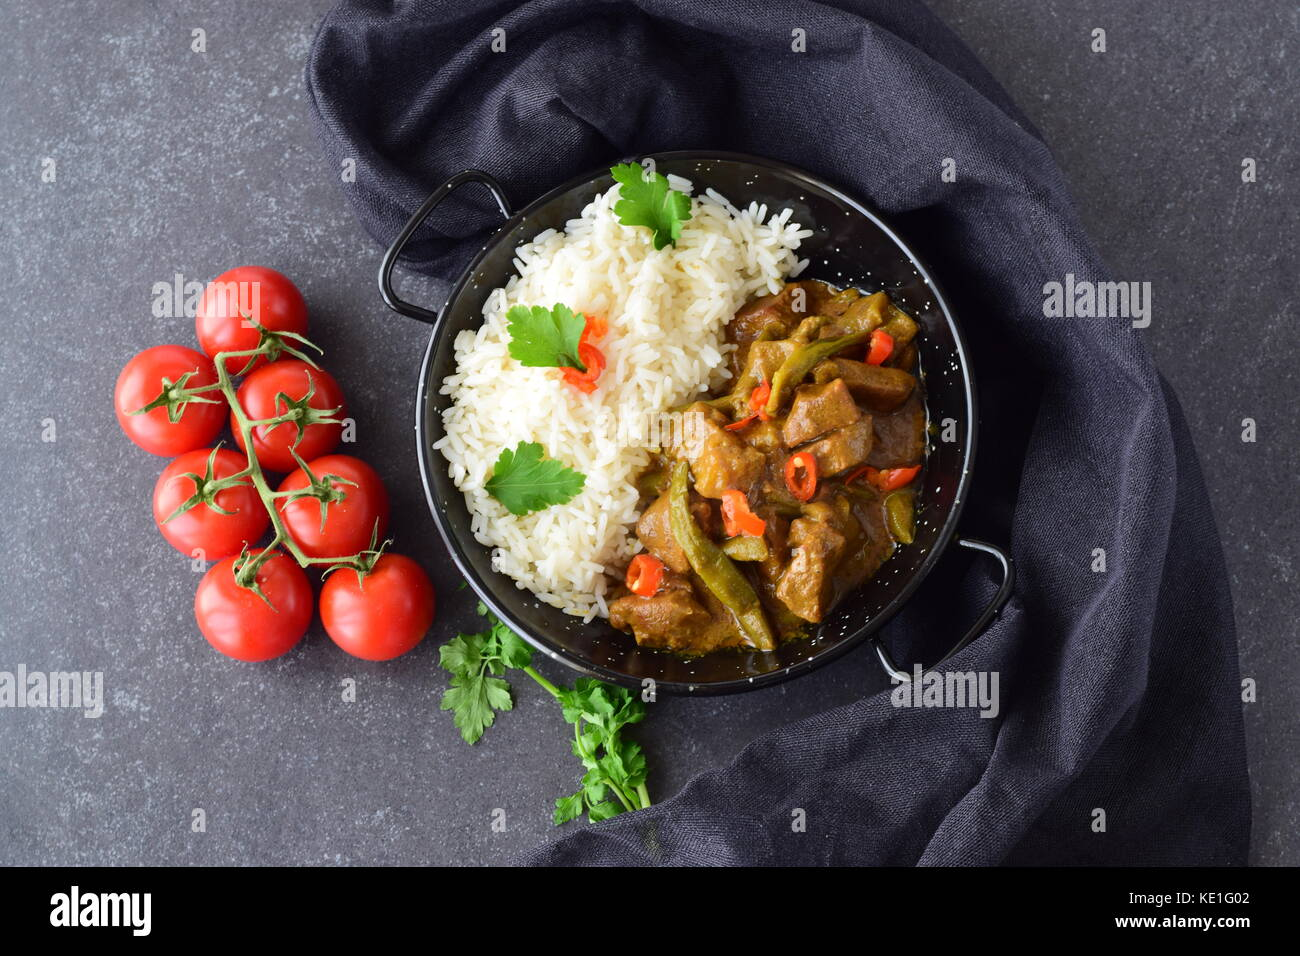 Attractive Pork In Spicy Curry Sauce With Eggplant And Green Beans, Served With Cooked  Rice In A Black Metal Bowl On A Grey Abstract Background. Home Cooking